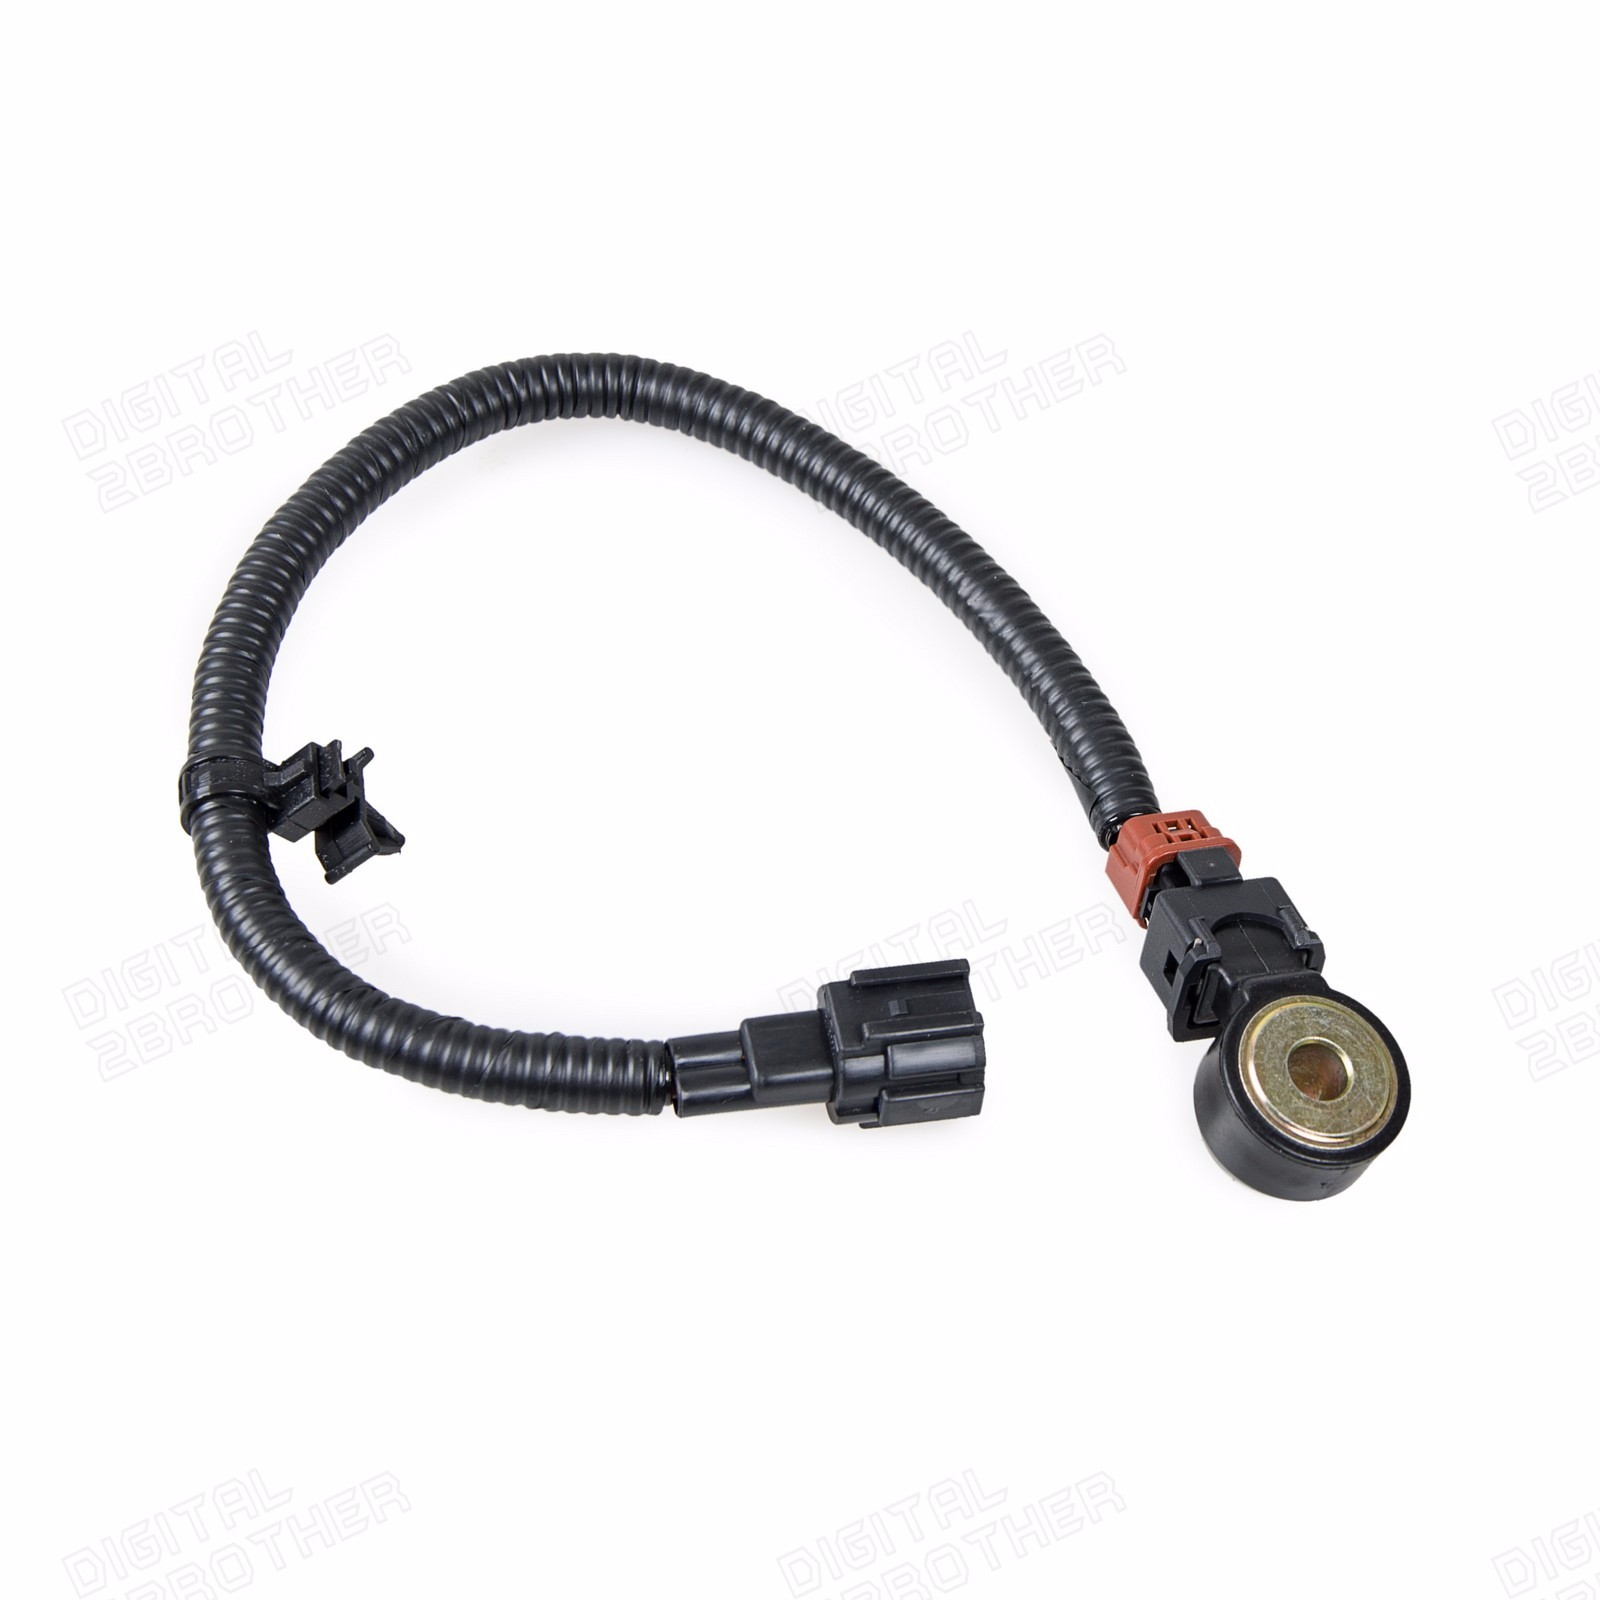 1995 Infiniti Q45 Knock Sensor Wiring Harness 45 Diagram 91 240sx Di Kns005 2 Engine With For Nissan